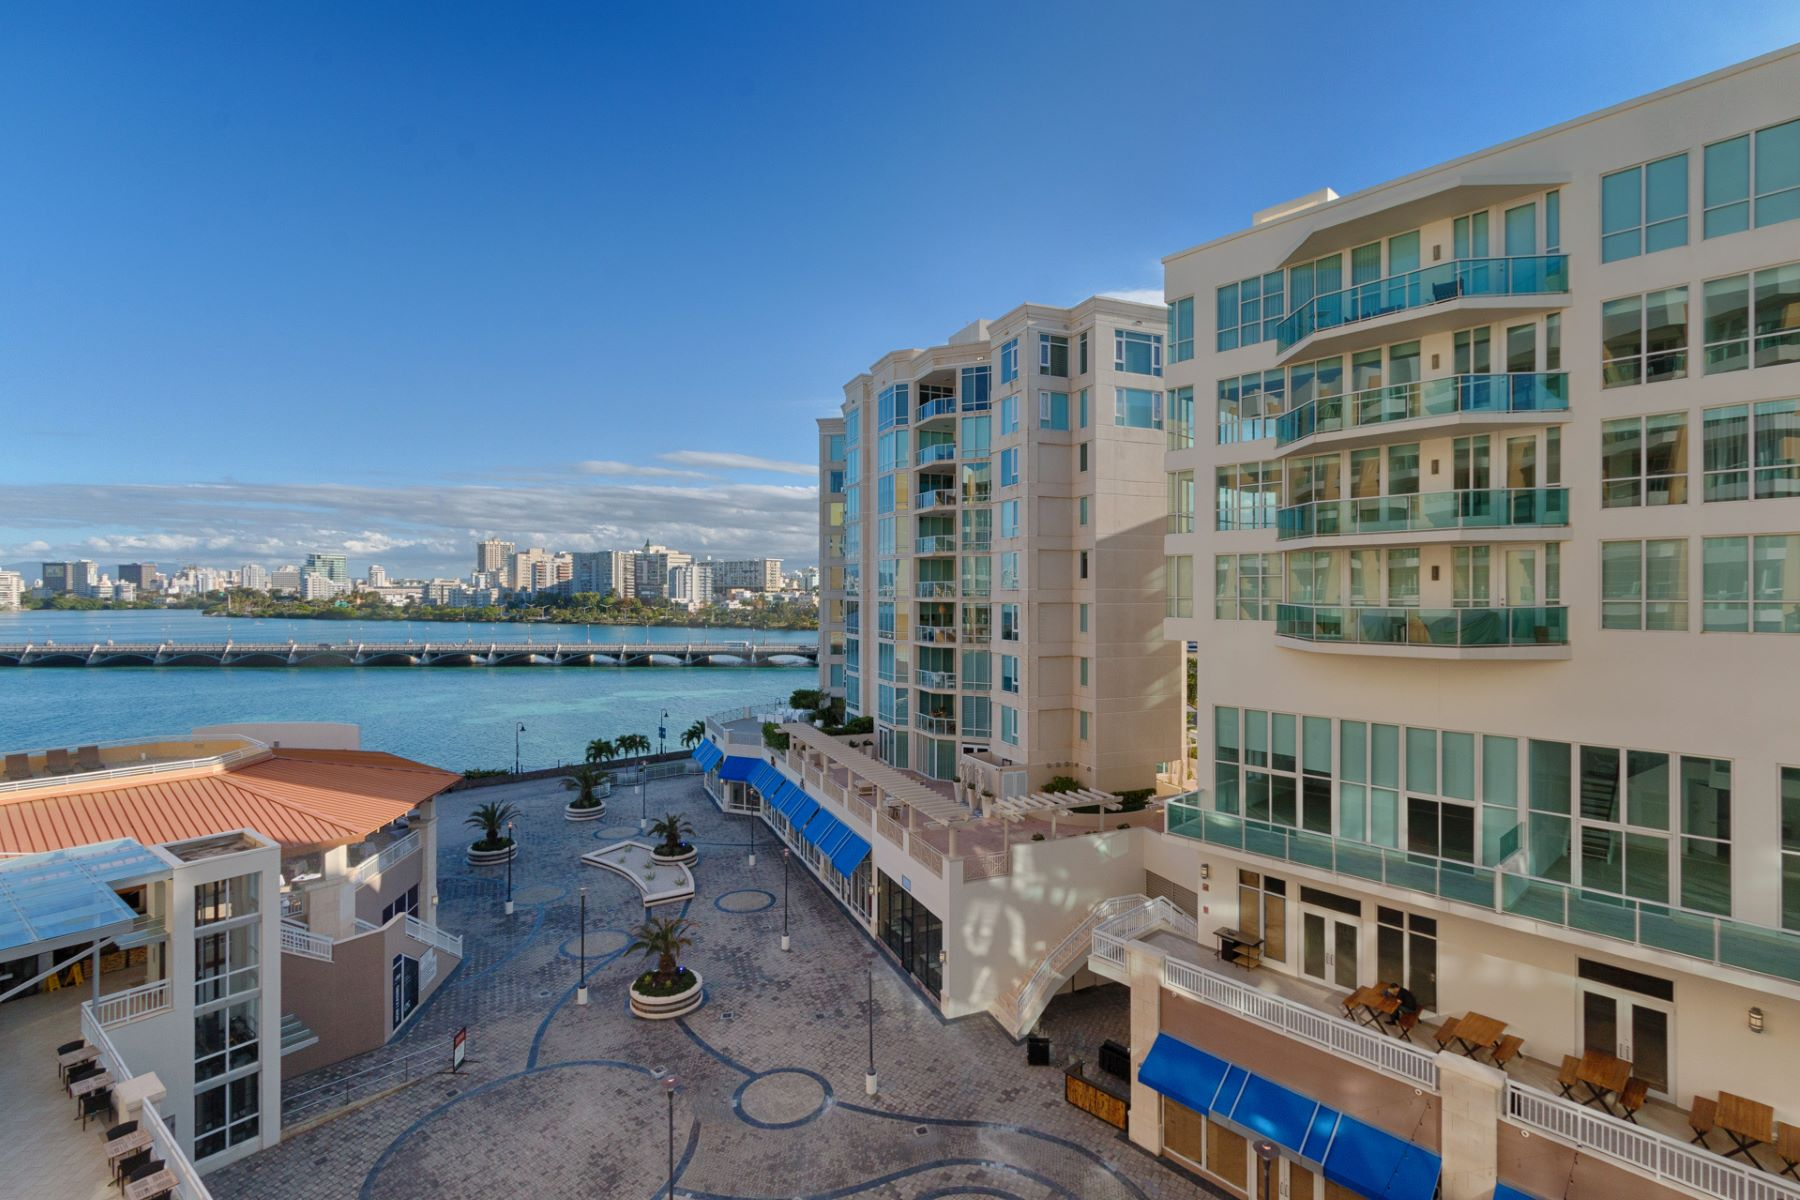 Additional photo for property listing at Exciting Sixth Floor Residence with Private Pool at Bahia Plaza 25 Munoz Rivera Avenue apt 601 San Juan, Puerto Rico 00901 Πουερτο Ρικο